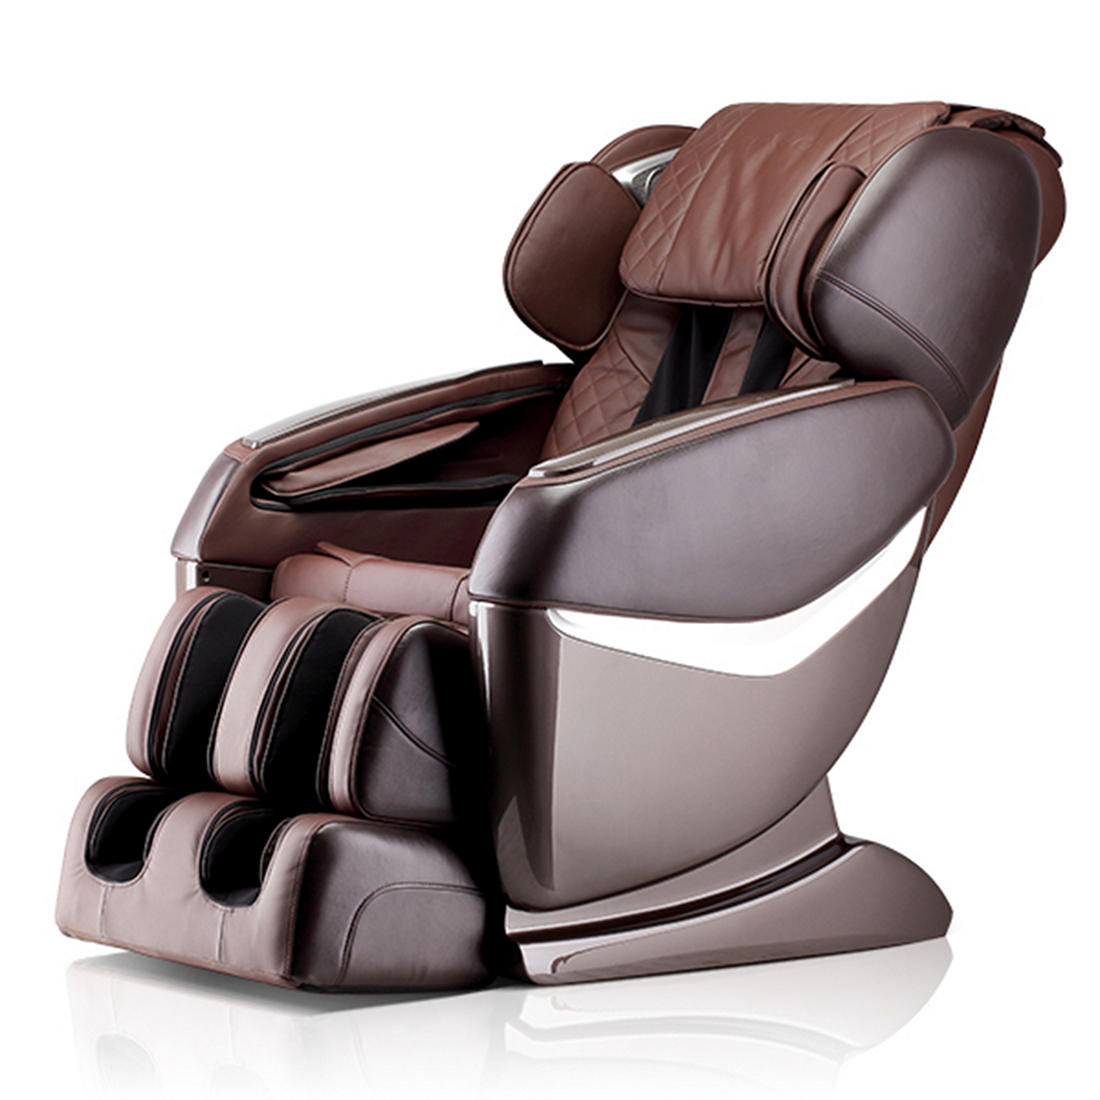 Fabulous Lifesmart Ultimate Zero Gravity Faux Leather Massage Chair Brown Interior Black Exterior Cjindustries Chair Design For Home Cjindustriesco